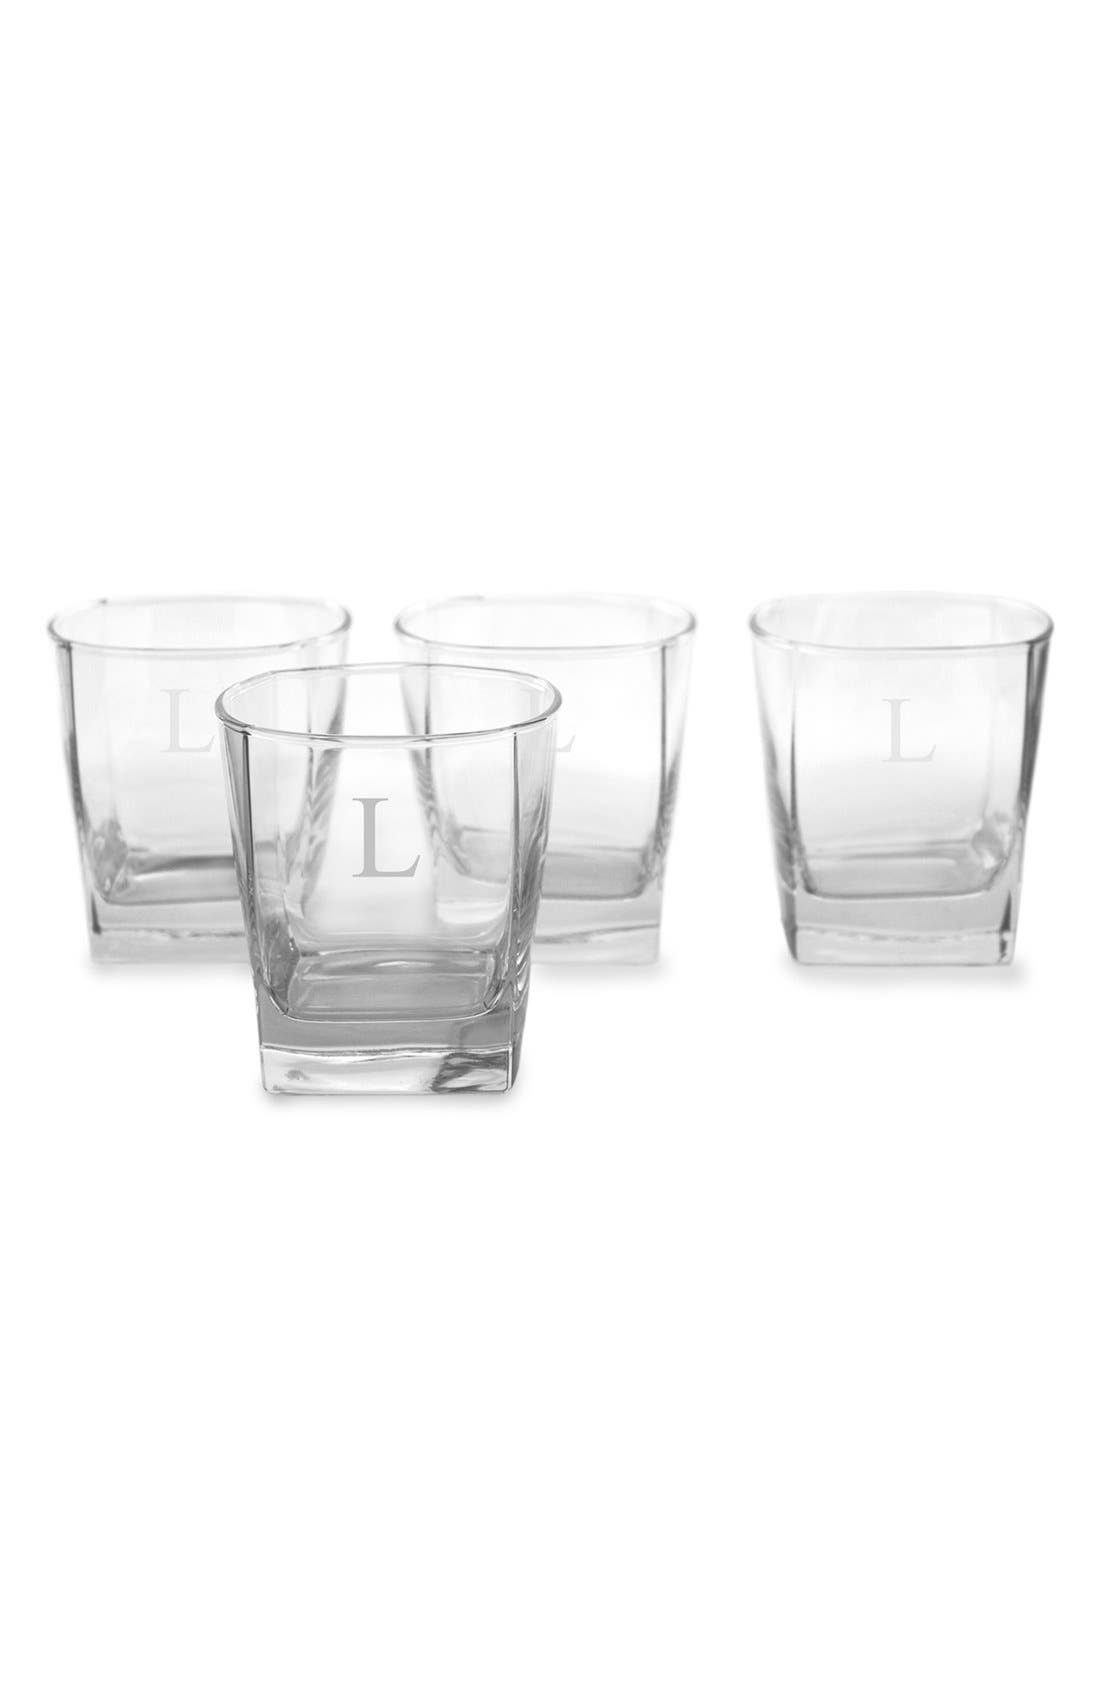 Main Image - Cathy's Concepts Monogram Rocks Glasses (Set of 4)